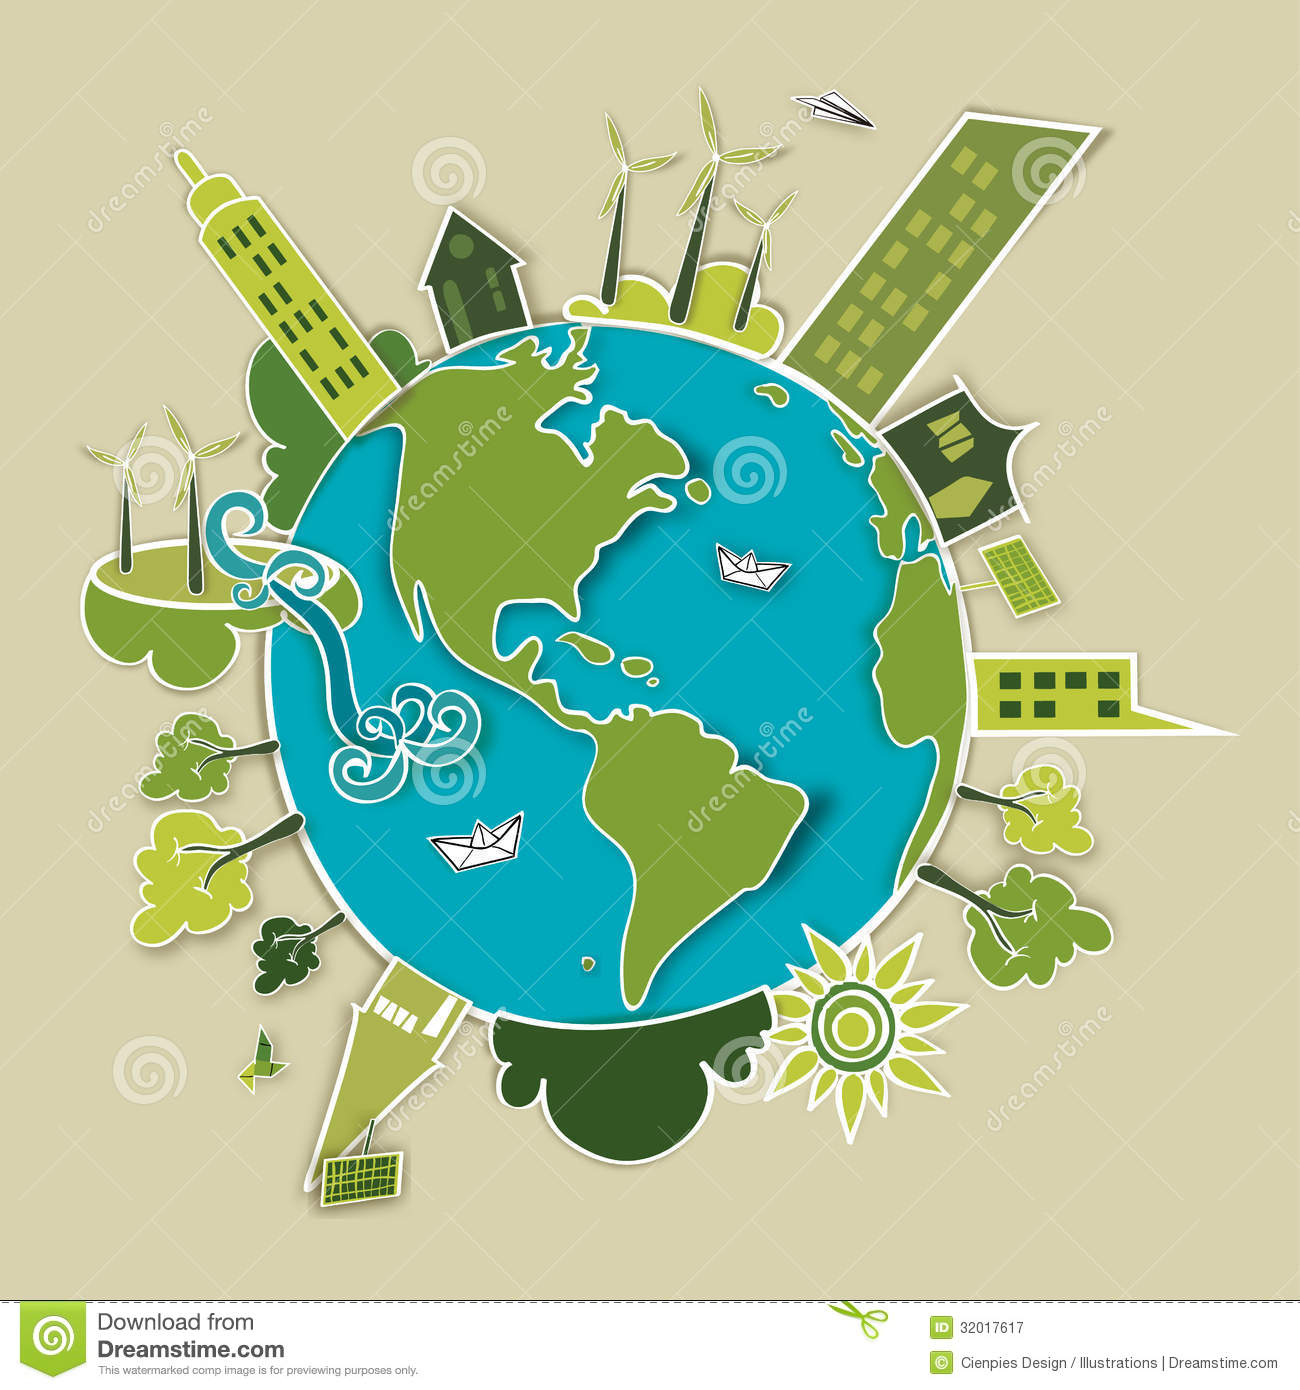 environmental sustainable development The concept of sustainable development first emerged in the 1960s when environmentalists started debating on the impact of economic growth on the environment since then, different definitions of sustainability and sustainable development have been put forward and discussed, but the most widely.